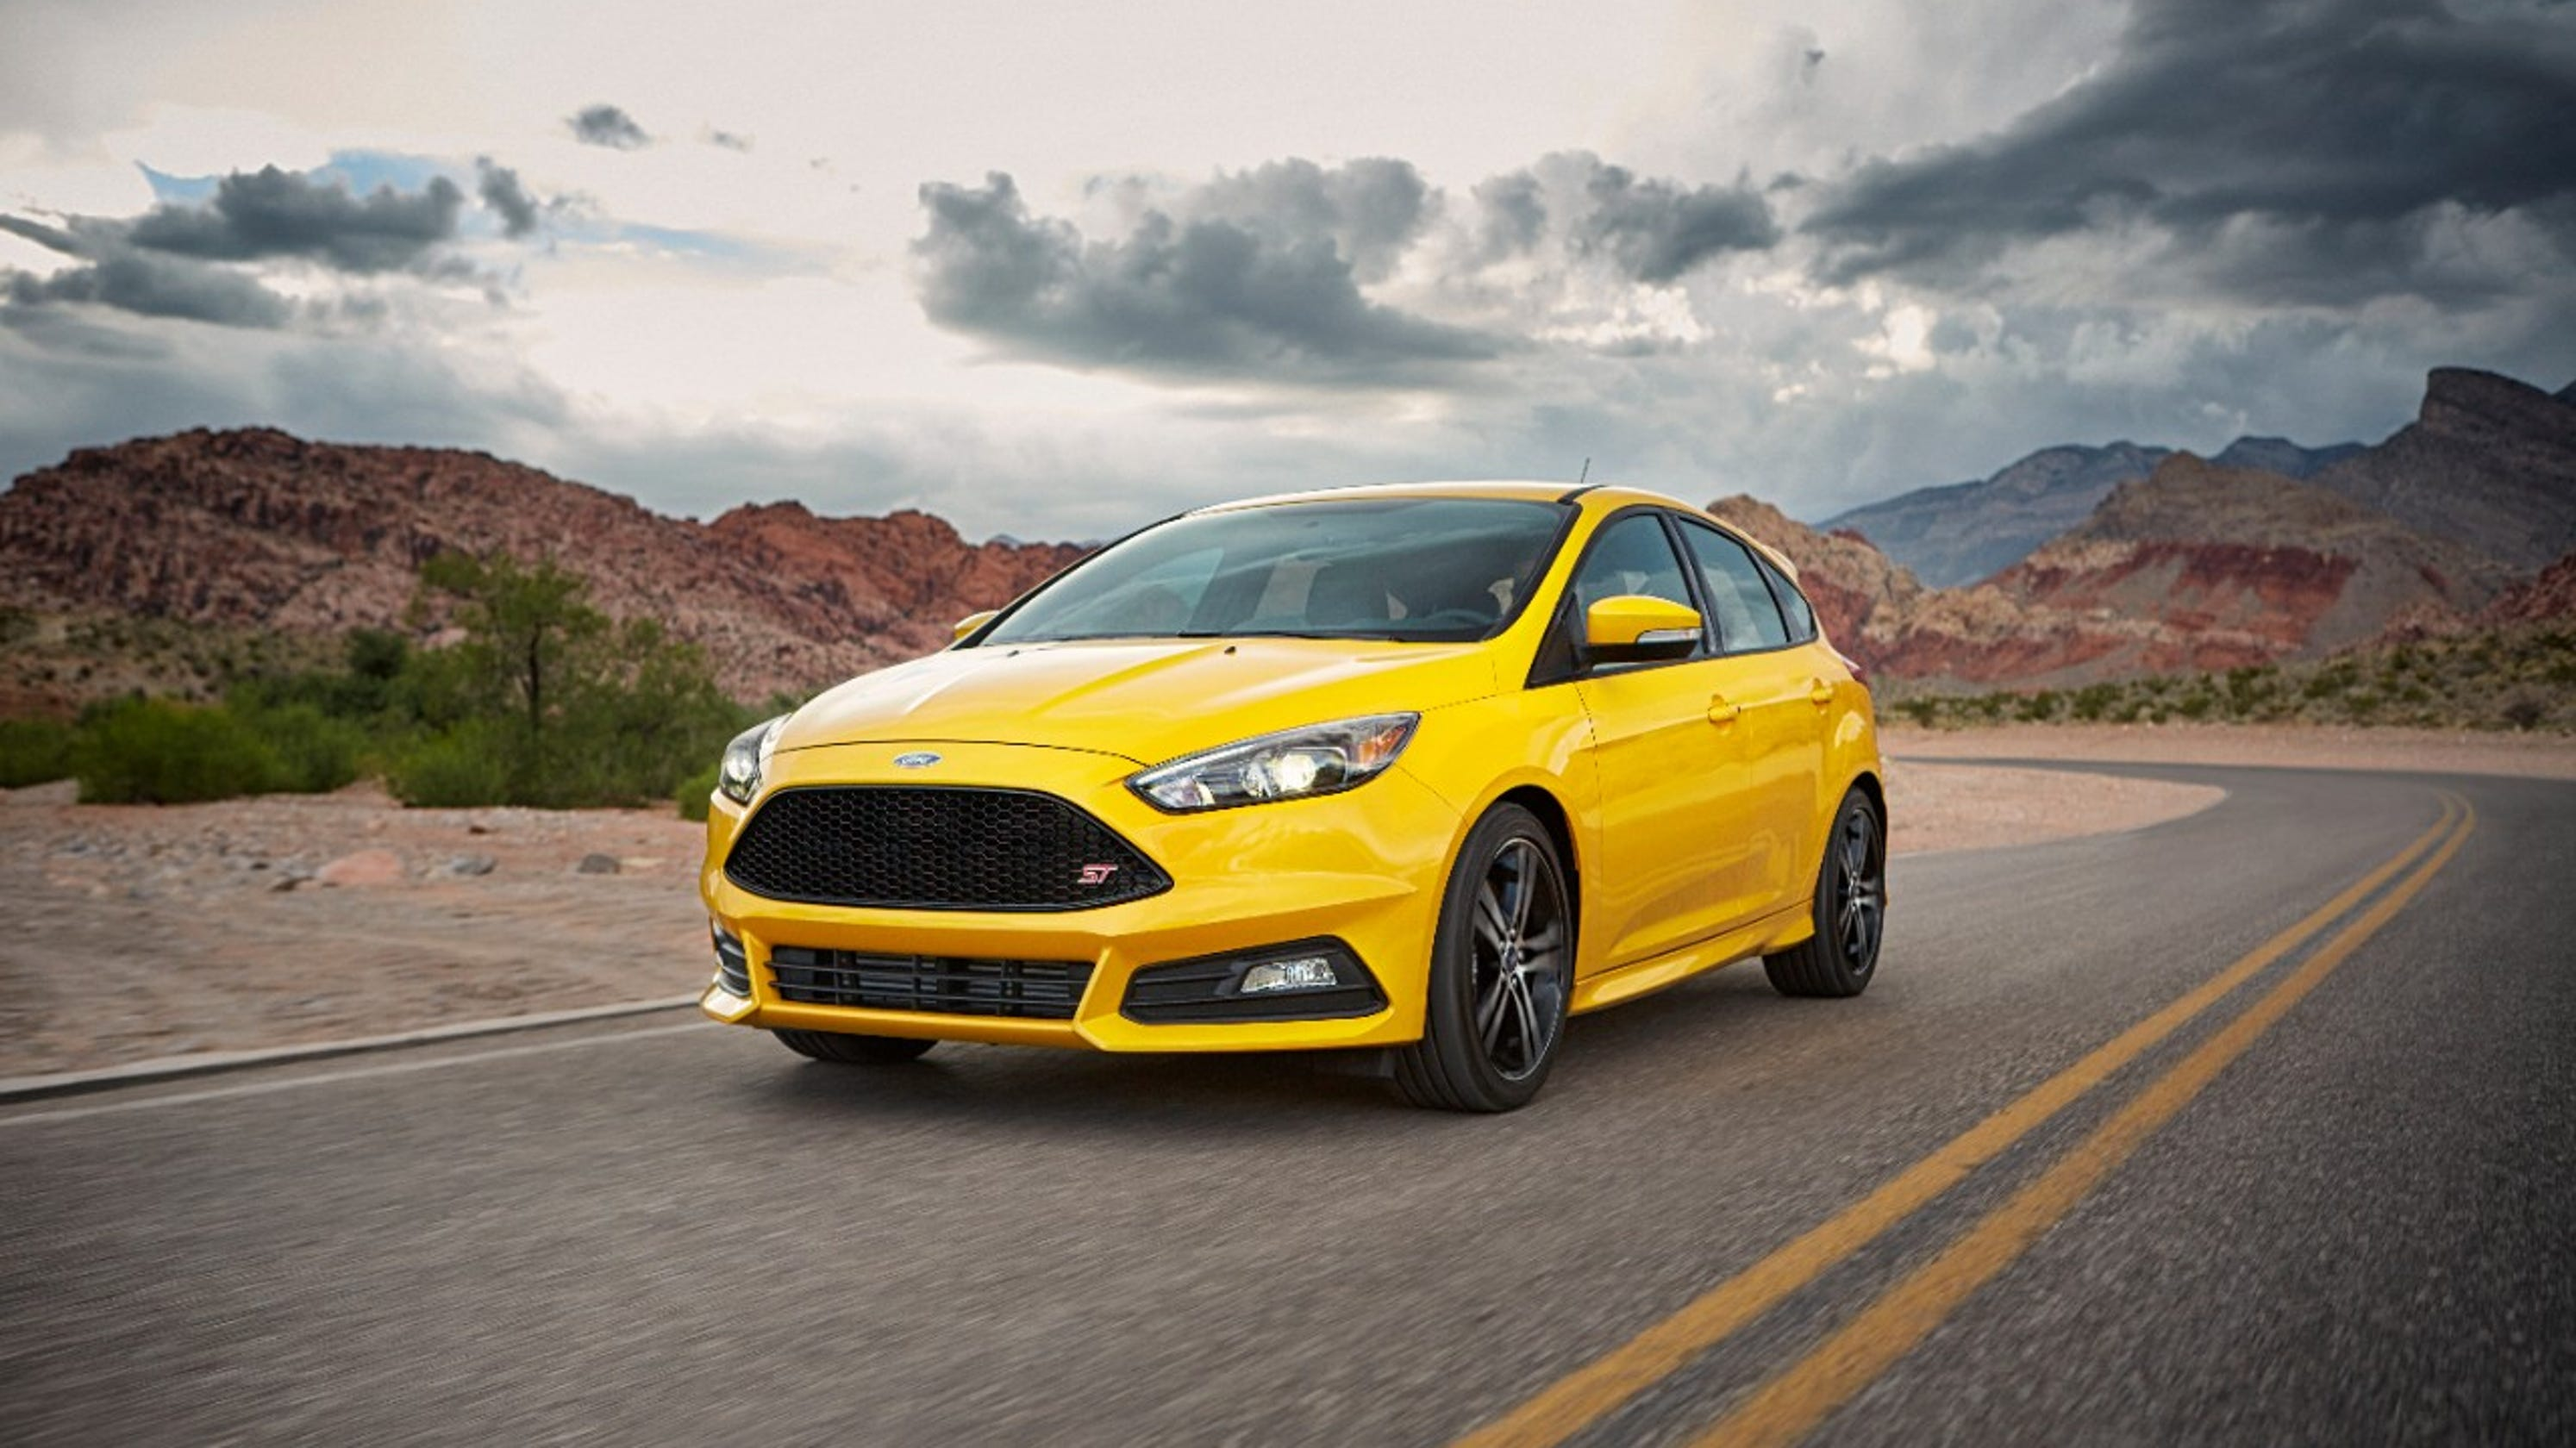 Ford Focus recall: 58,000 cars recalled over potential fuel tank issue